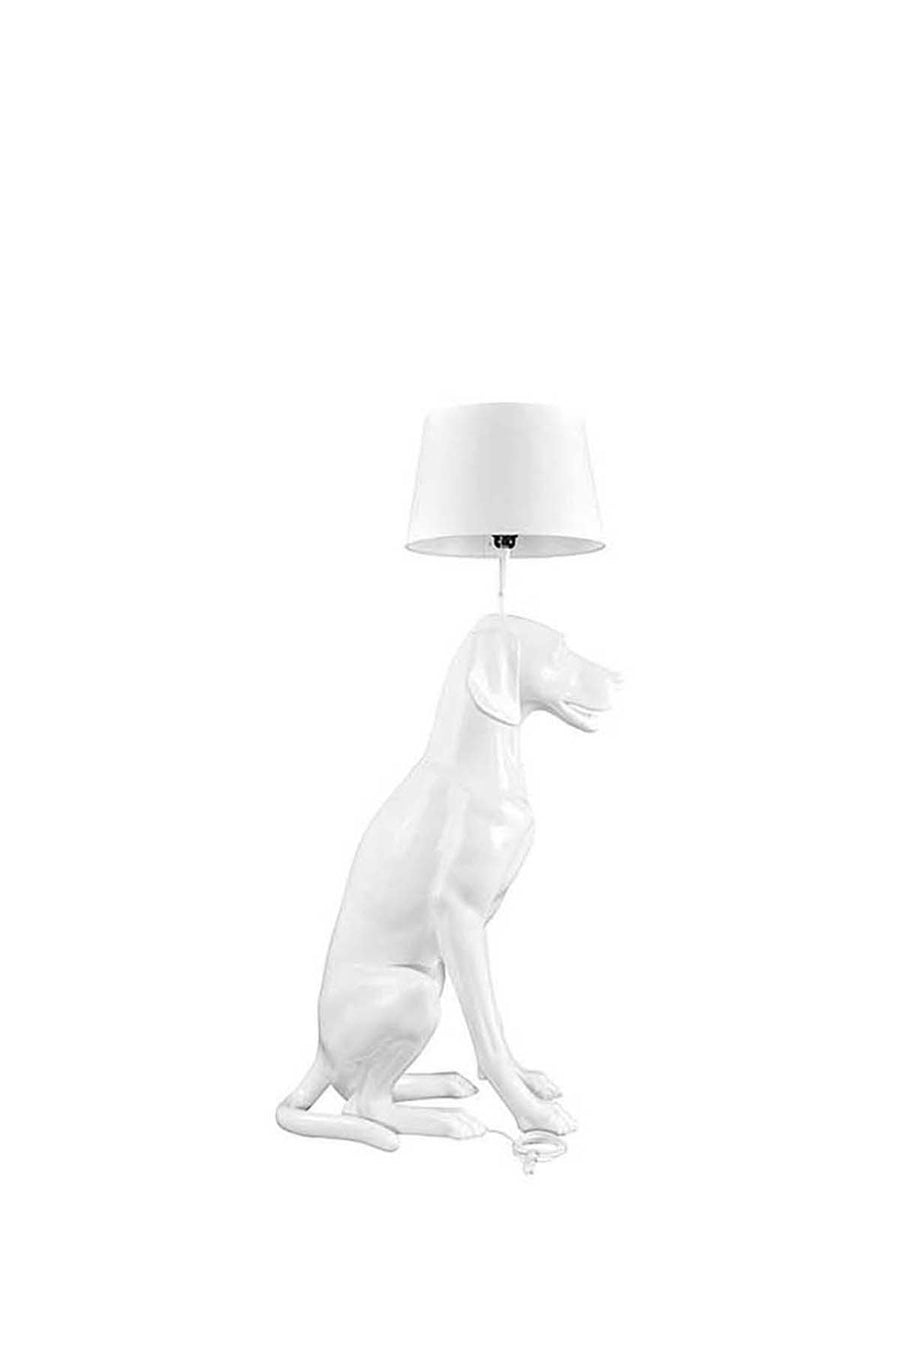 pure white sitting dog mannequin with functioning lamp on head